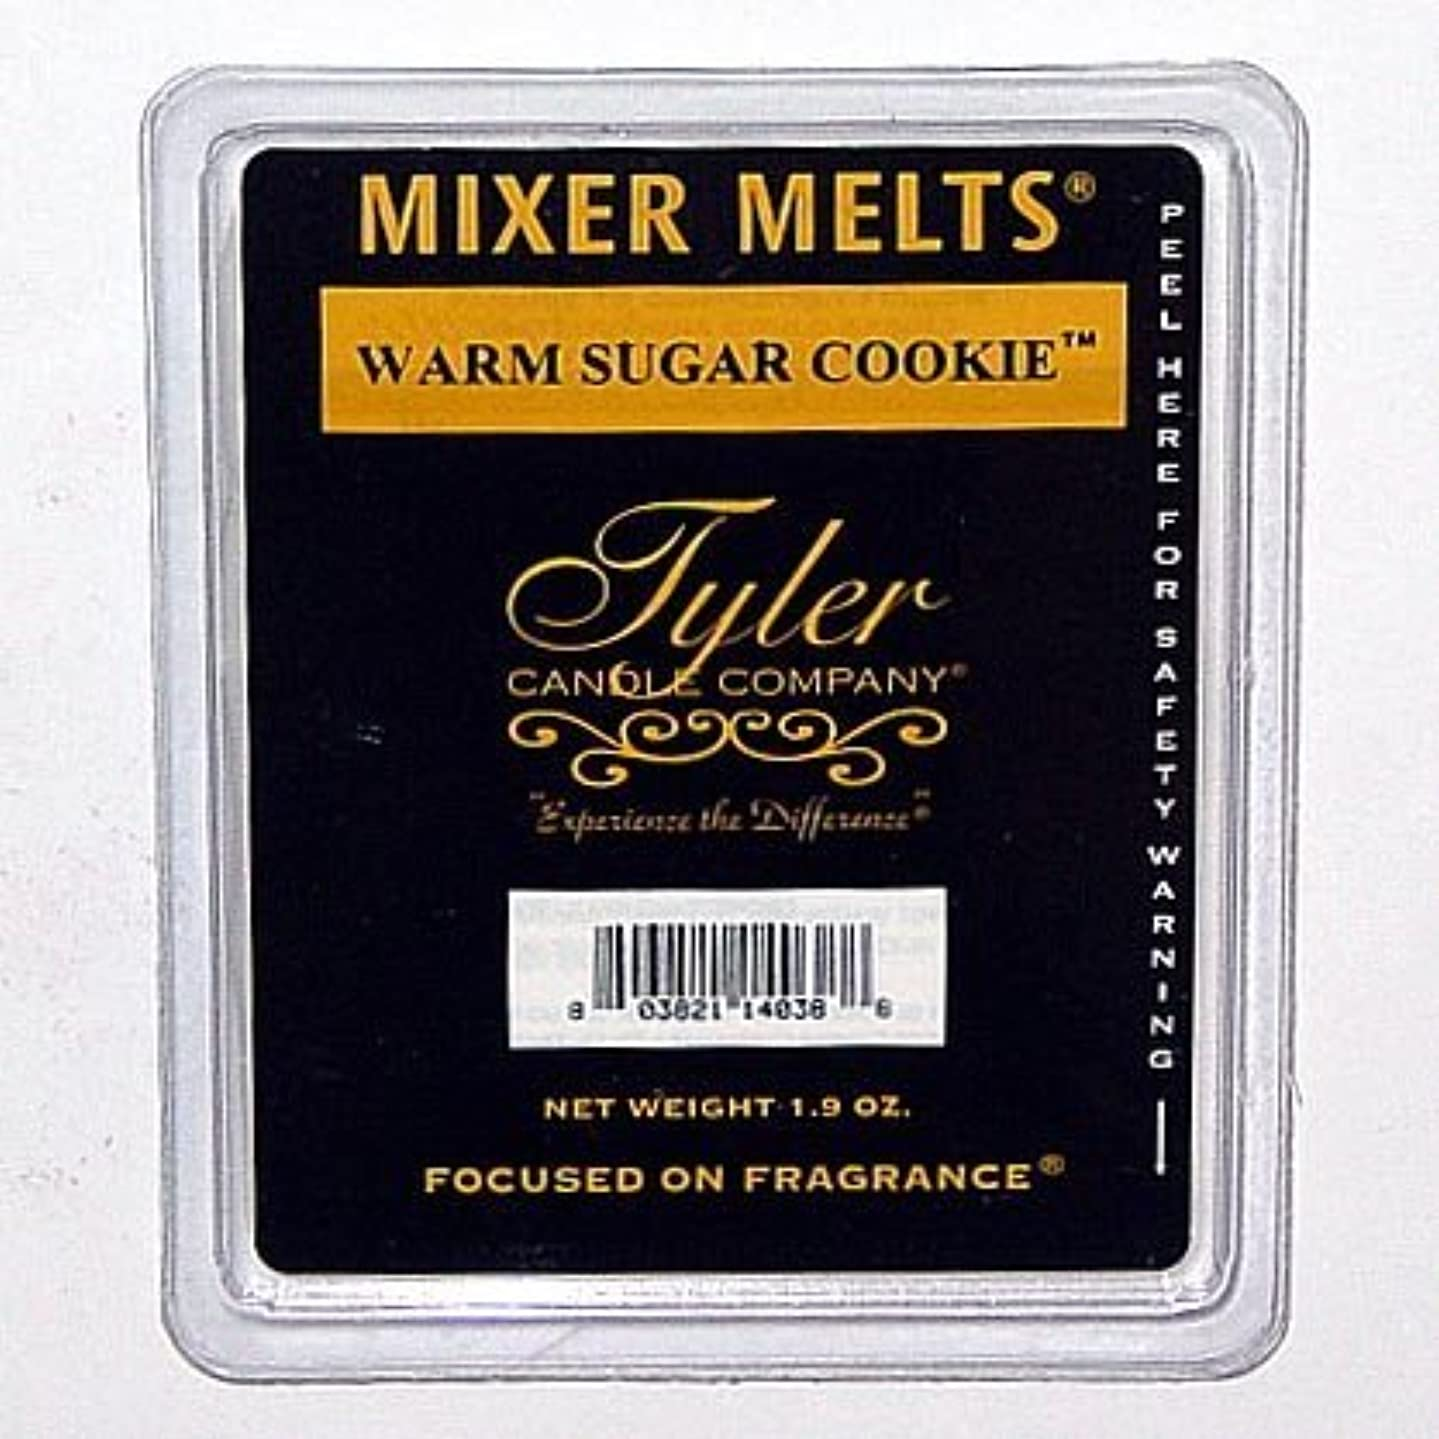 Tyler Candle Mixer Melts Wax Potpourri Set of 4 - Warm Sugar Cookie